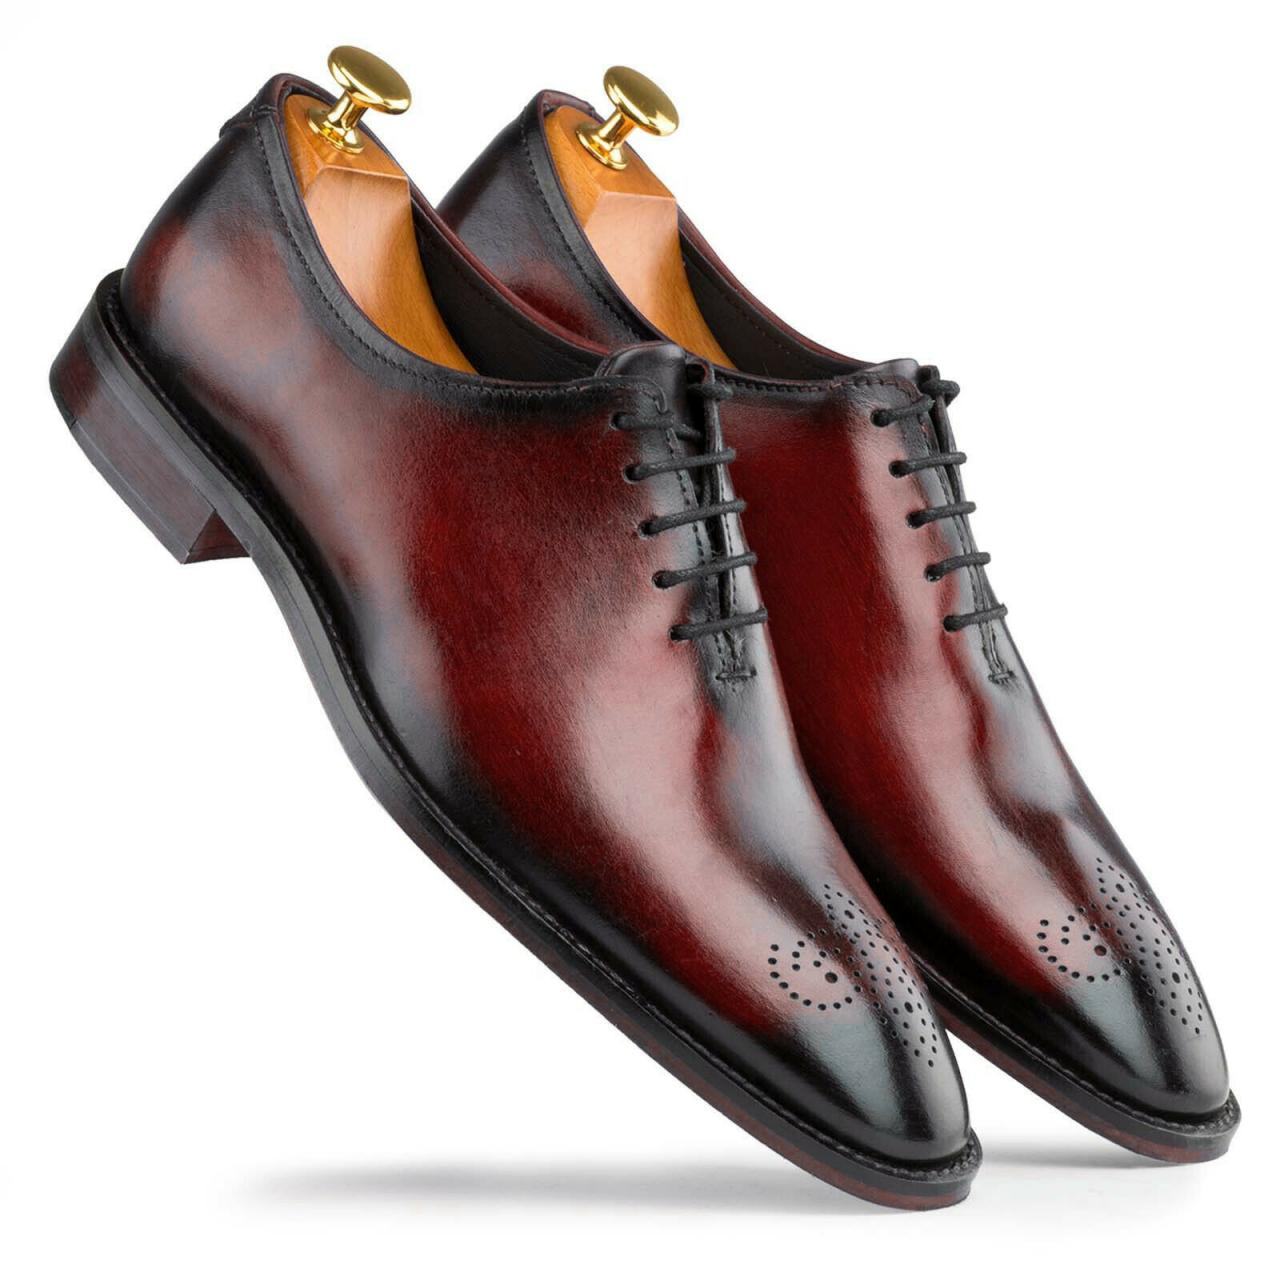 New Handmade Simple Brogues Shaded Burgundy Leather Shoes, Men Dress Shoes, Formal Shoes